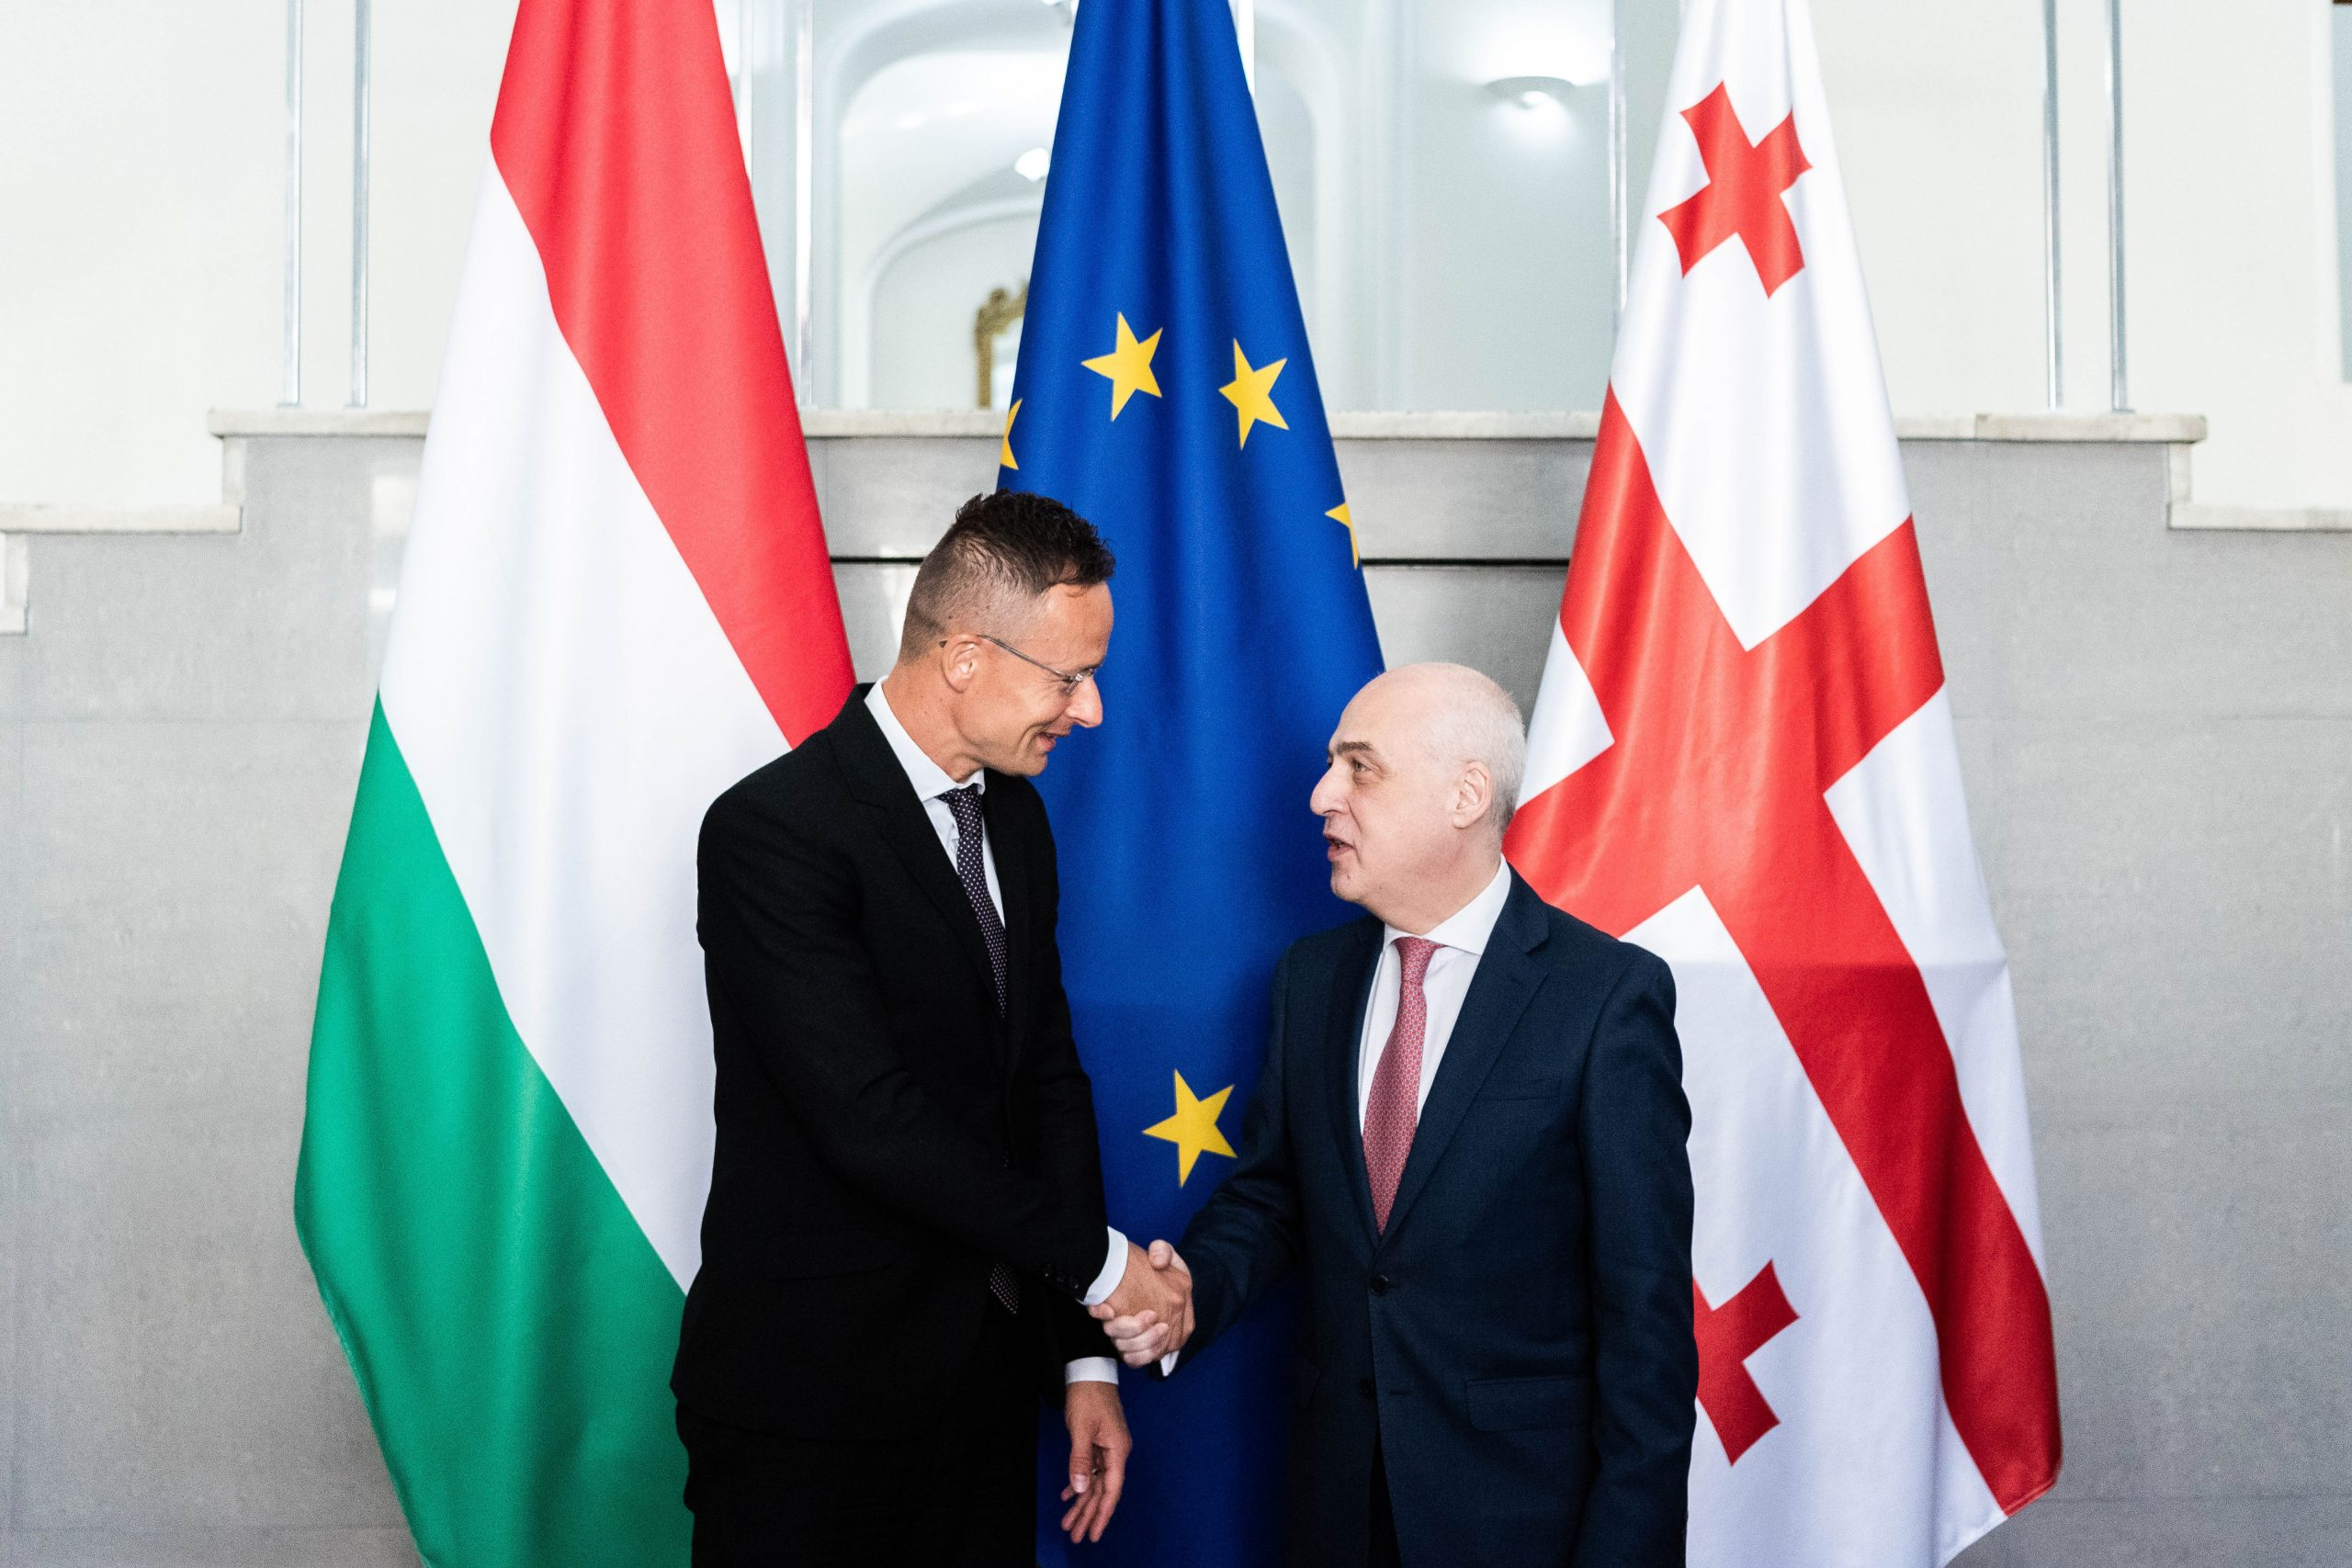 Eastern Partnership Among EU's Most Important Policies, says Foreign Minister Szijjártó post's picture